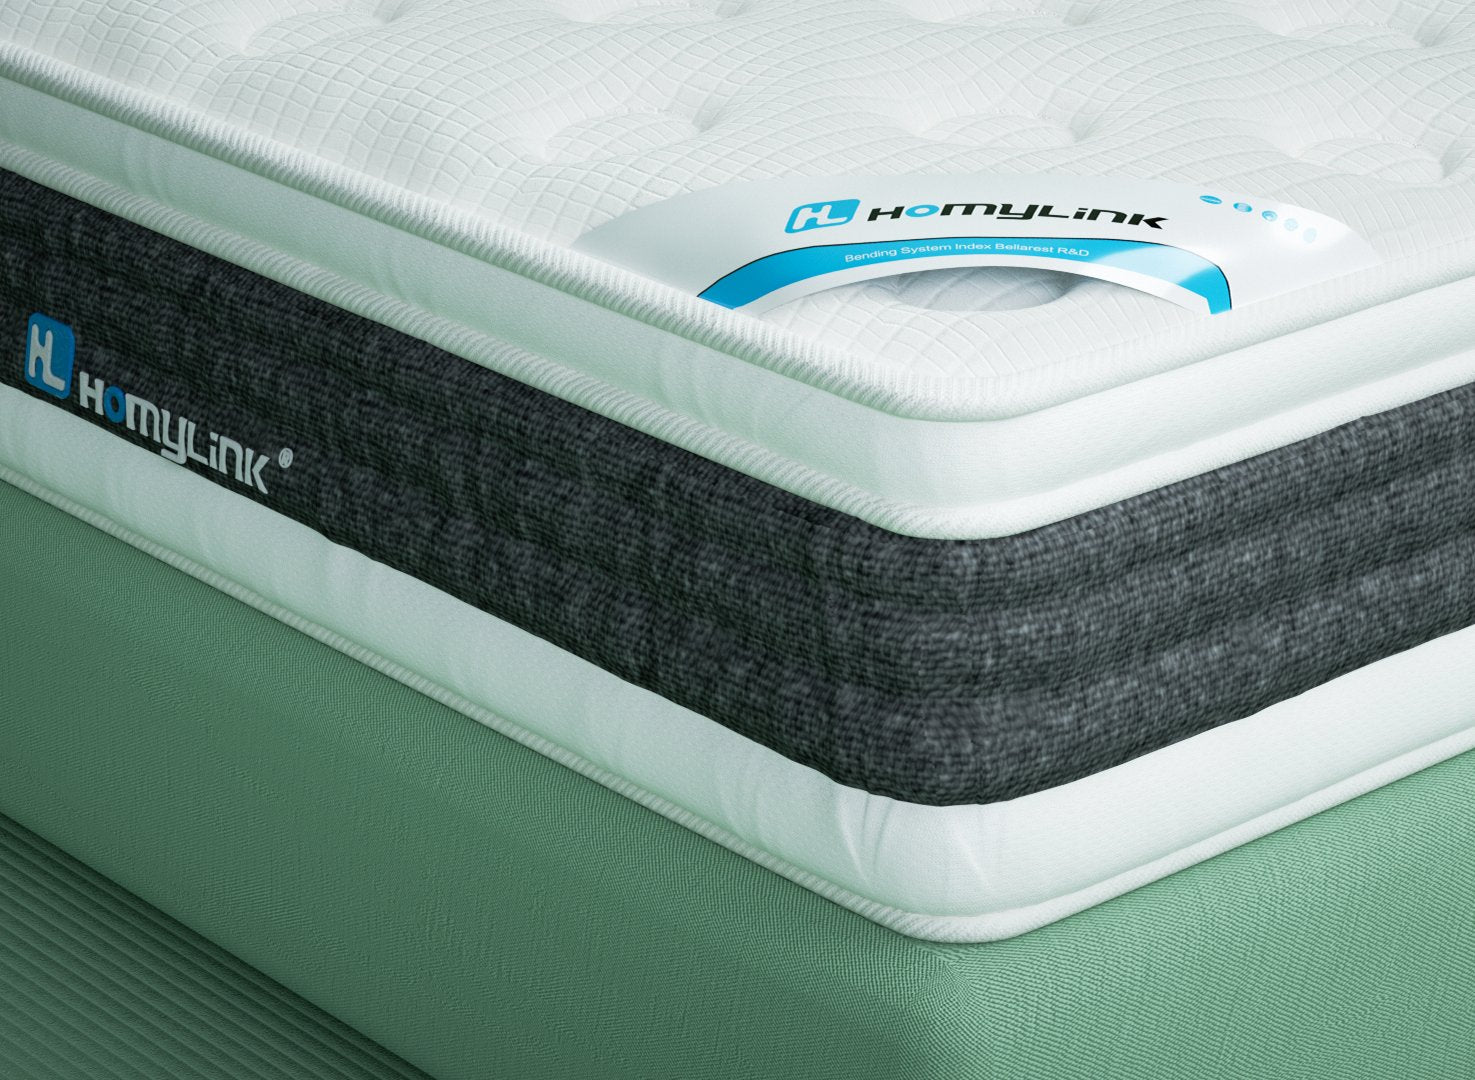 PINE Cooling Gel Memory Foam Pocket Sprung Mattress Breathable Knitting